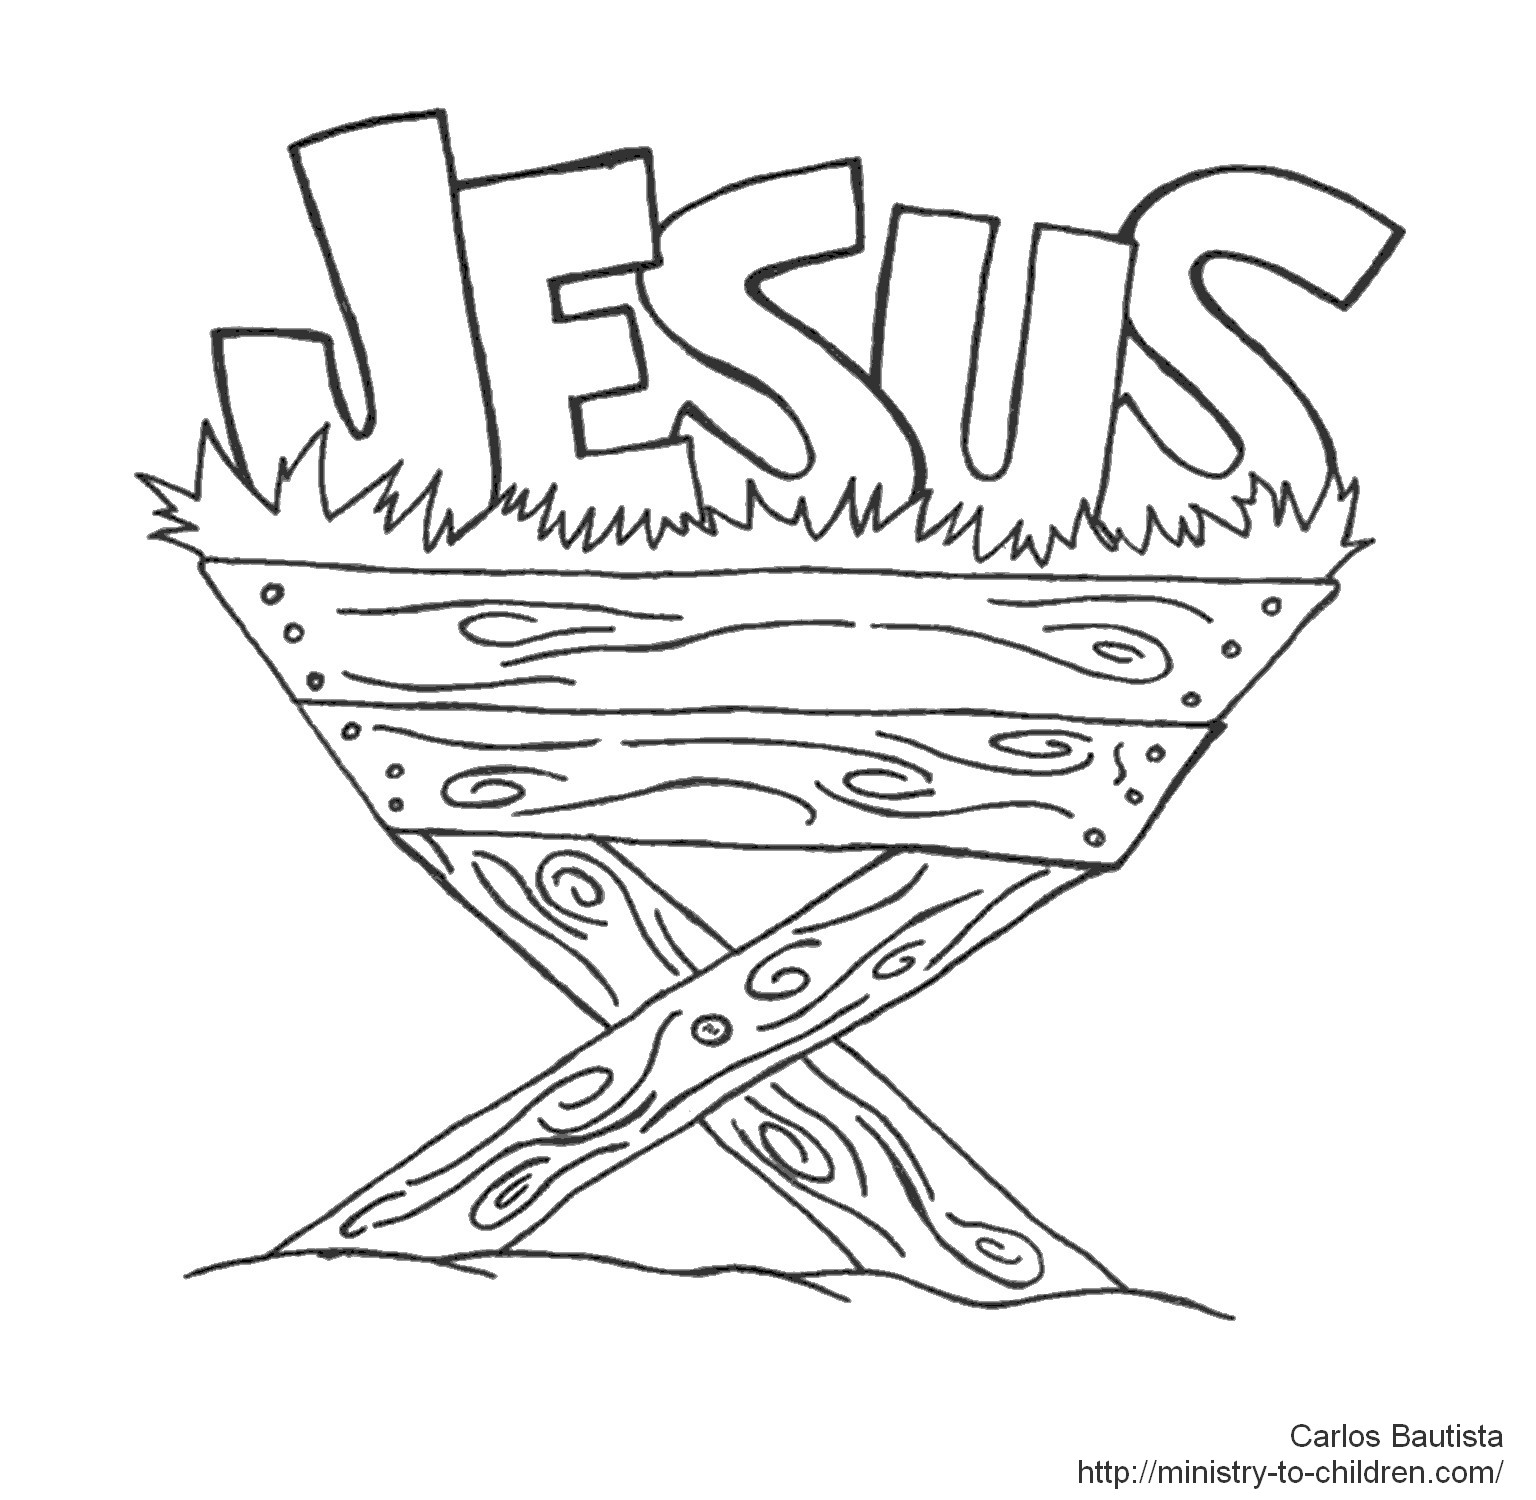 baby jesus in manger coloring page baby jesus in manger drawing at getdrawings free download jesus page manger baby in coloring